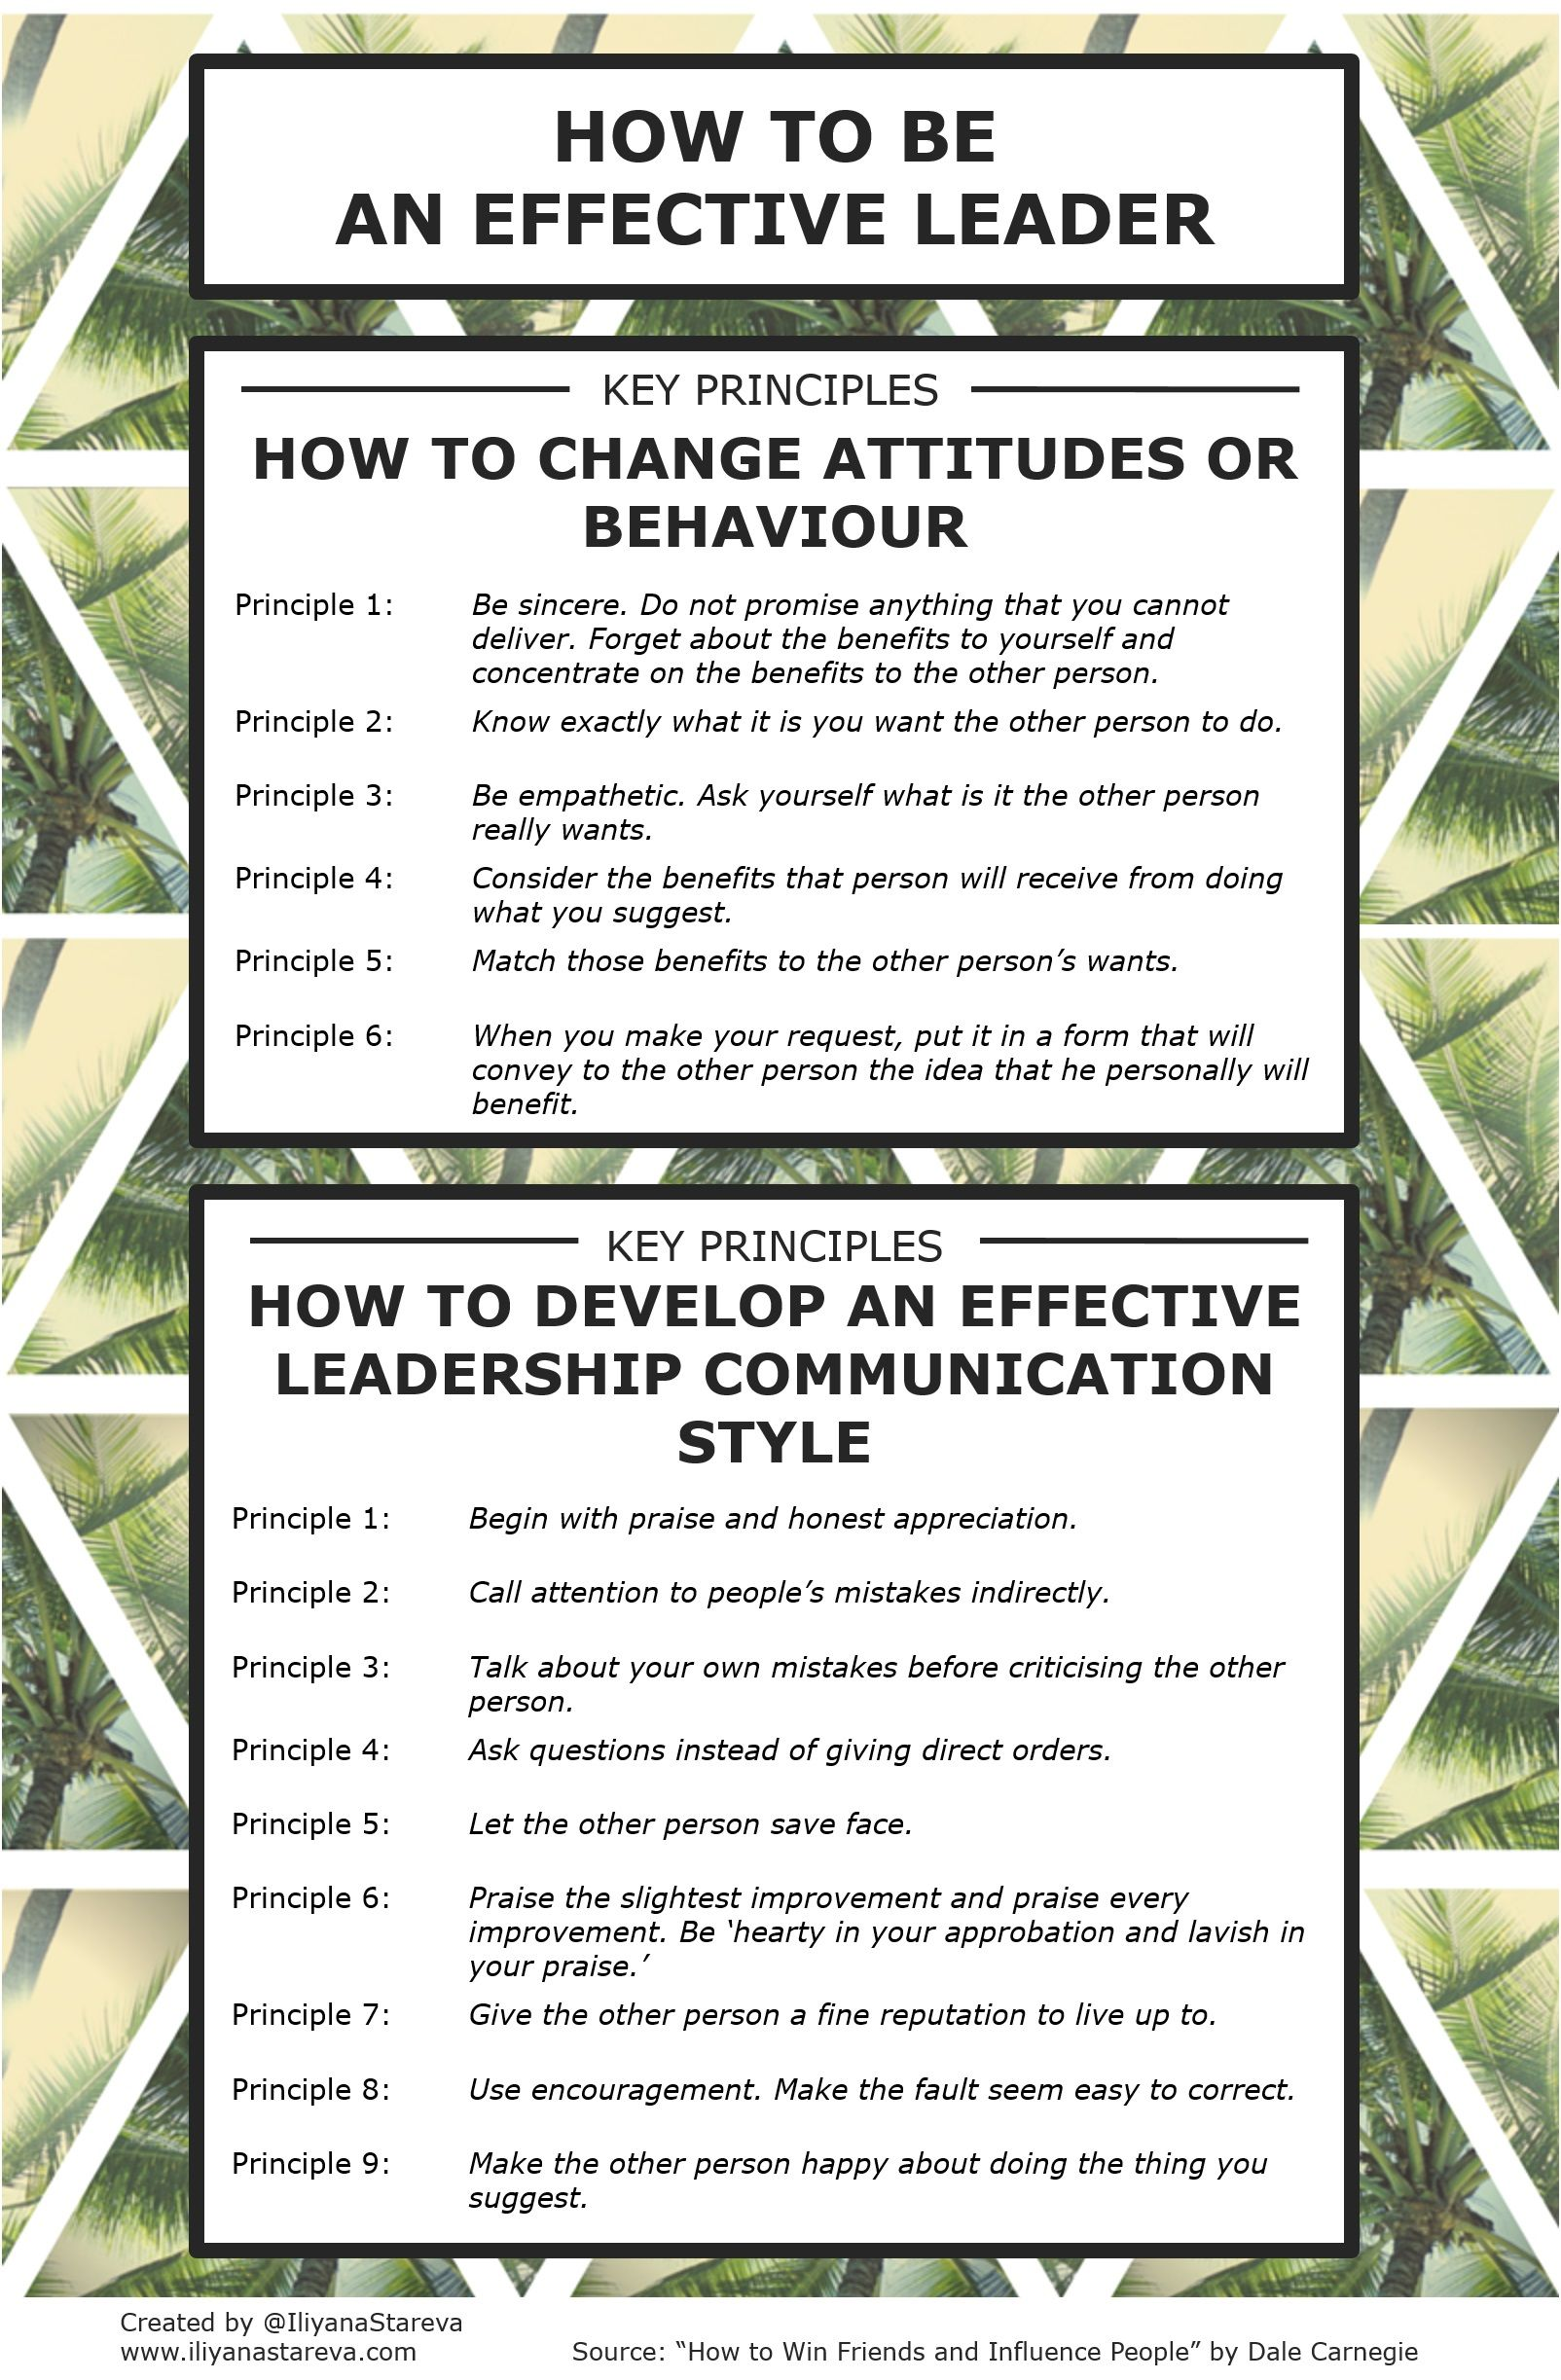 People have lost trust in leadership, businesses and CEOs. Here's an infographic with the main principles on being an effective leader.